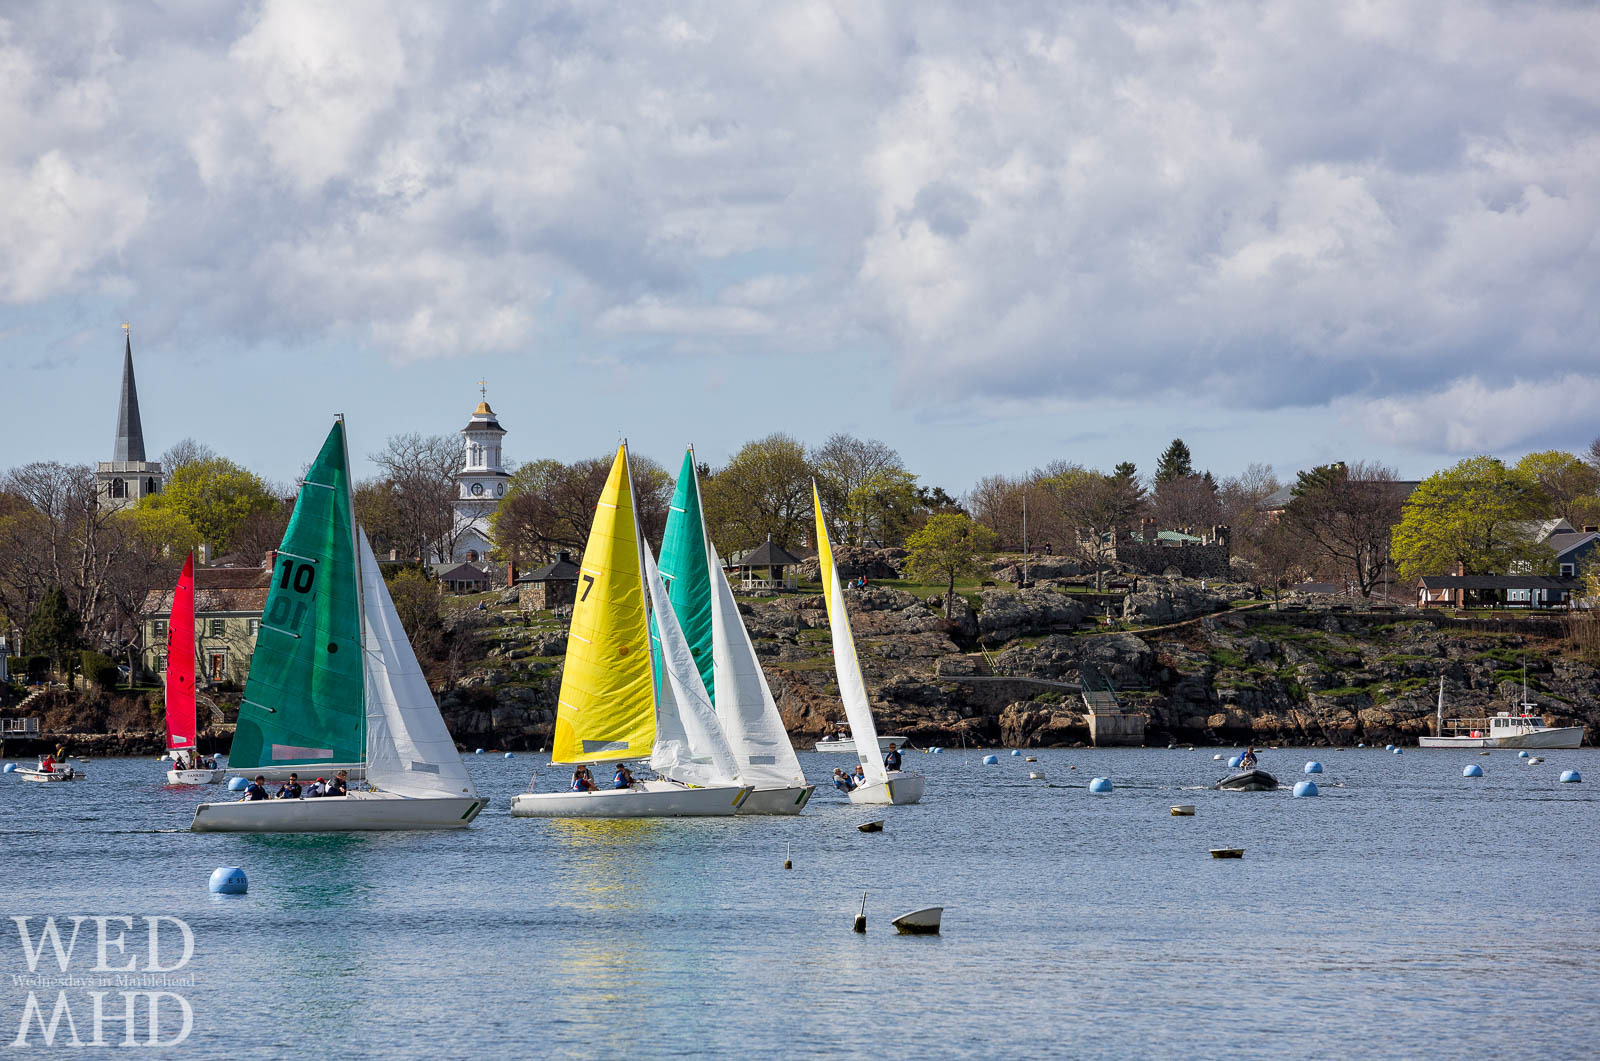 A group of sailboats participates in the Jackson Cup racing in Marblehead Harbor